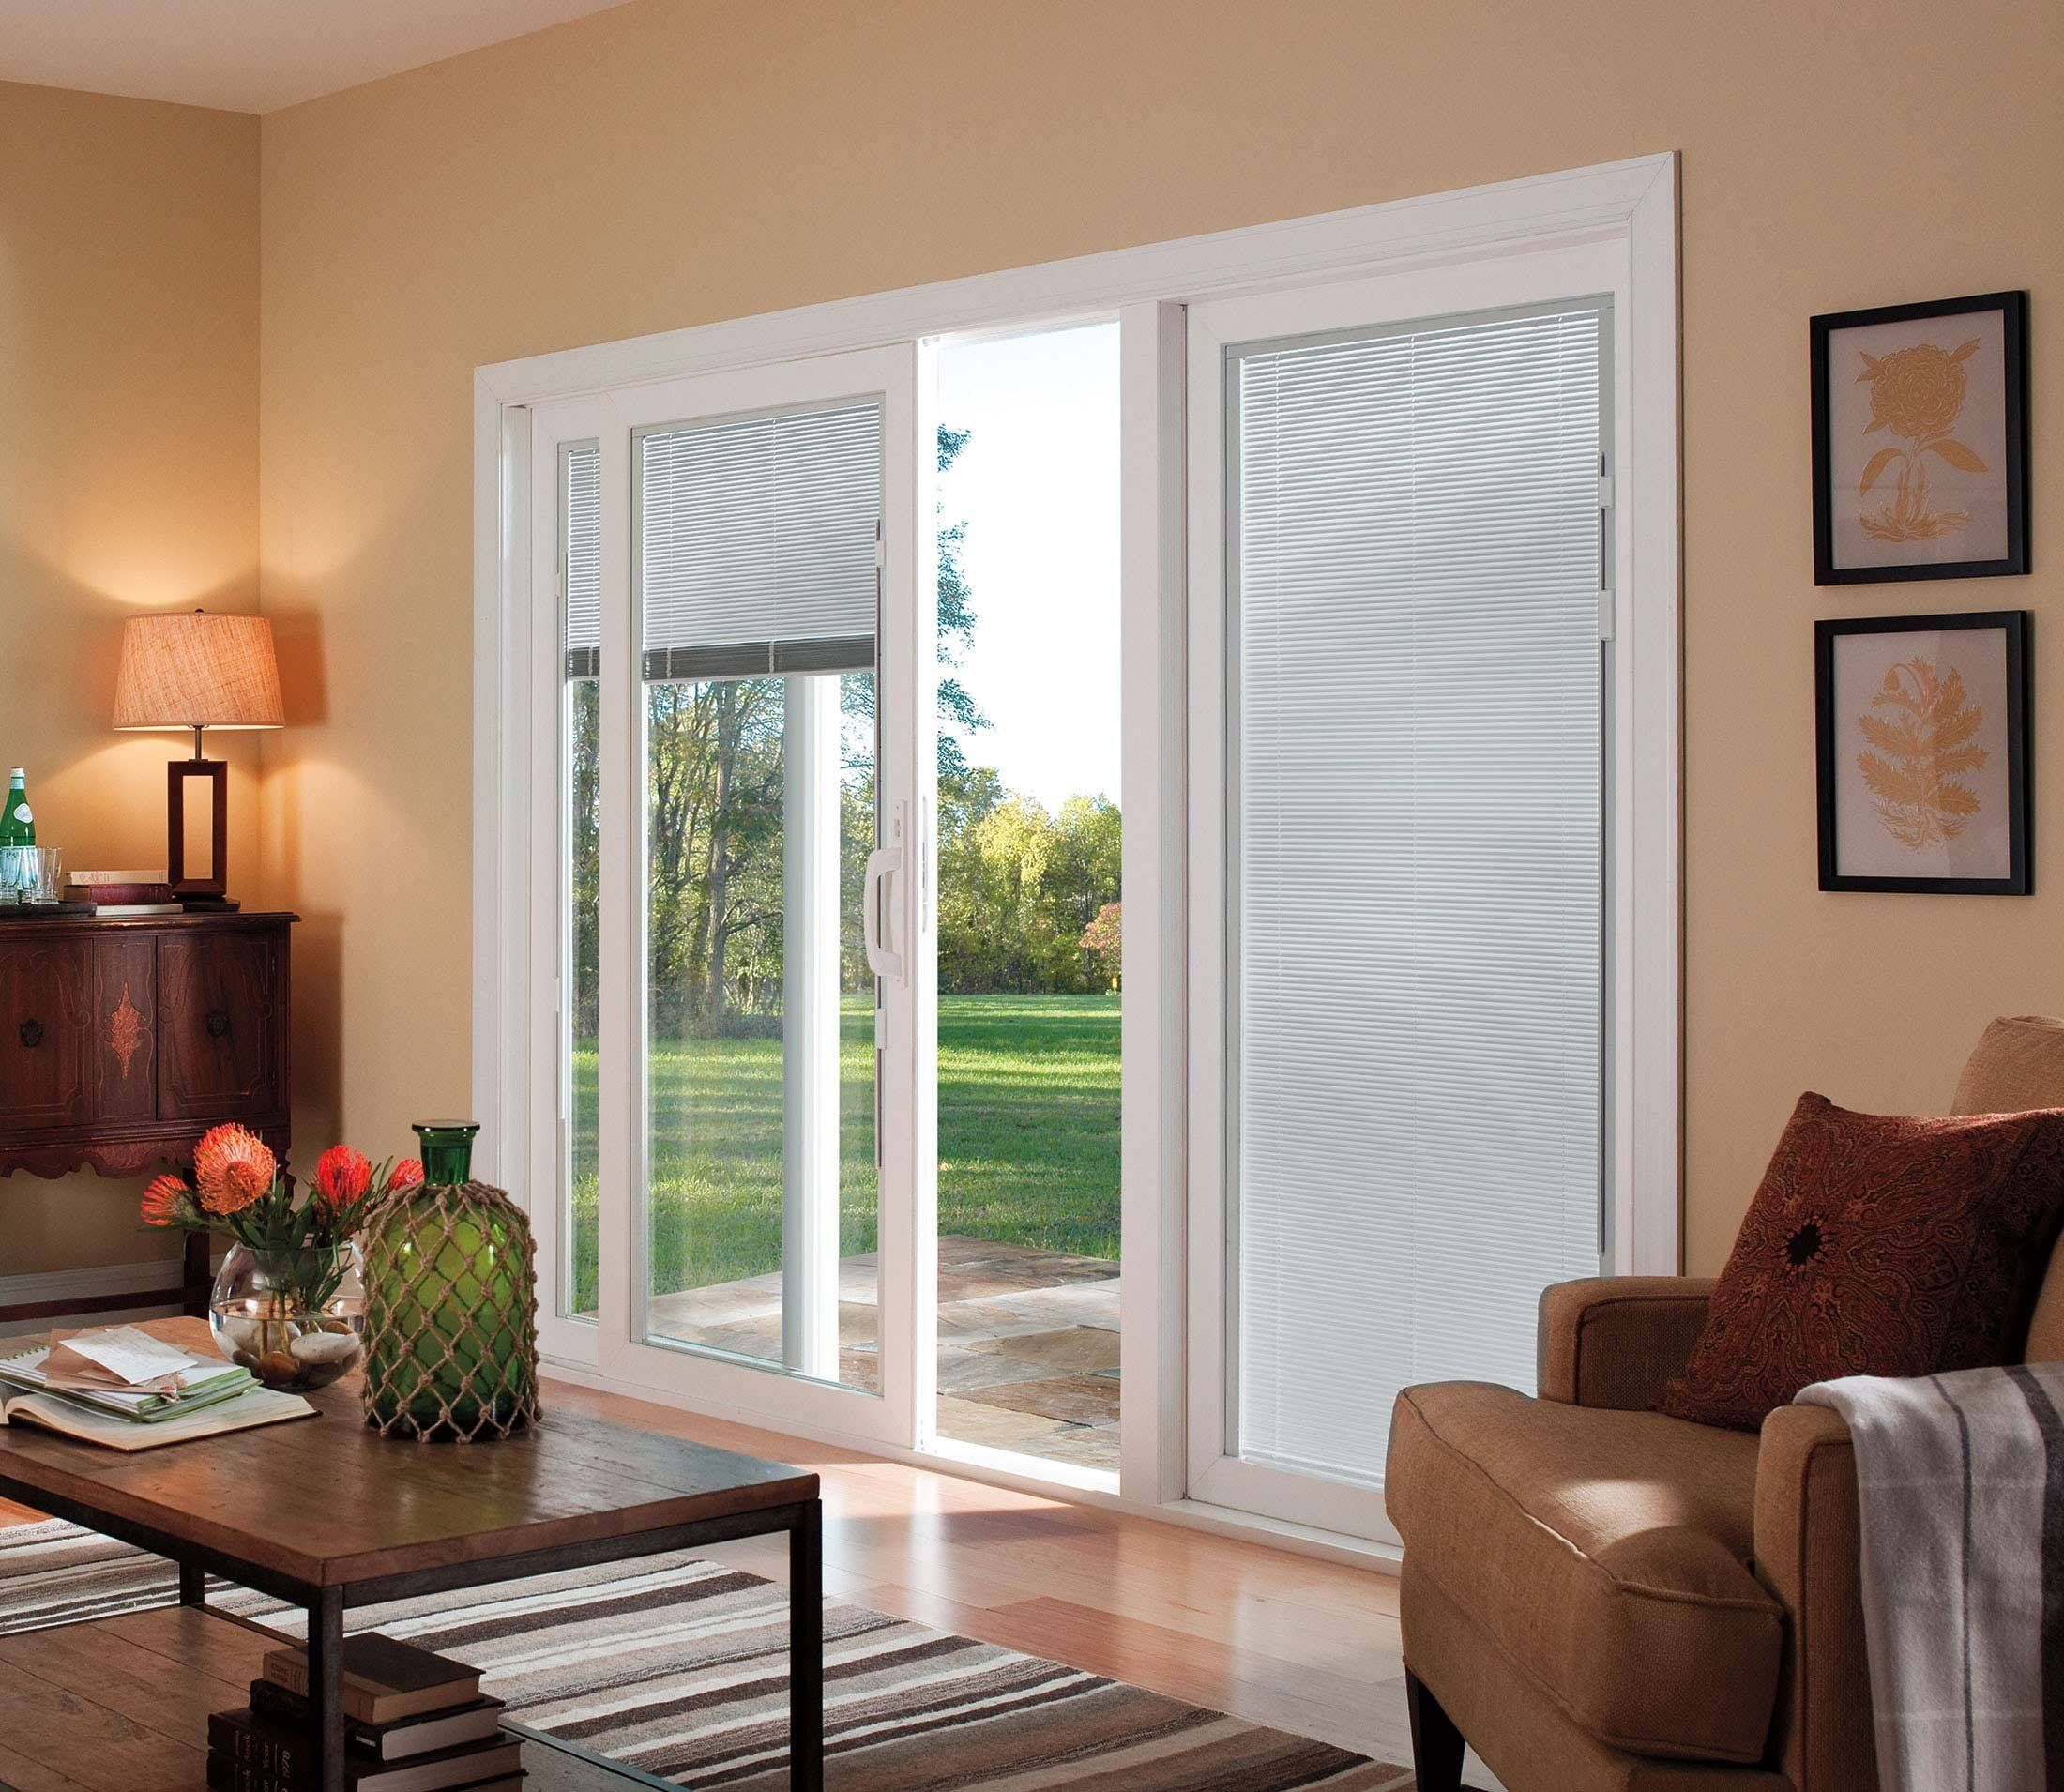 Window Treatment Ideas For Sliding Glass Doors Sliding Glass Door Blinds Sliding Glass Doors Patio Blinds For French Doors